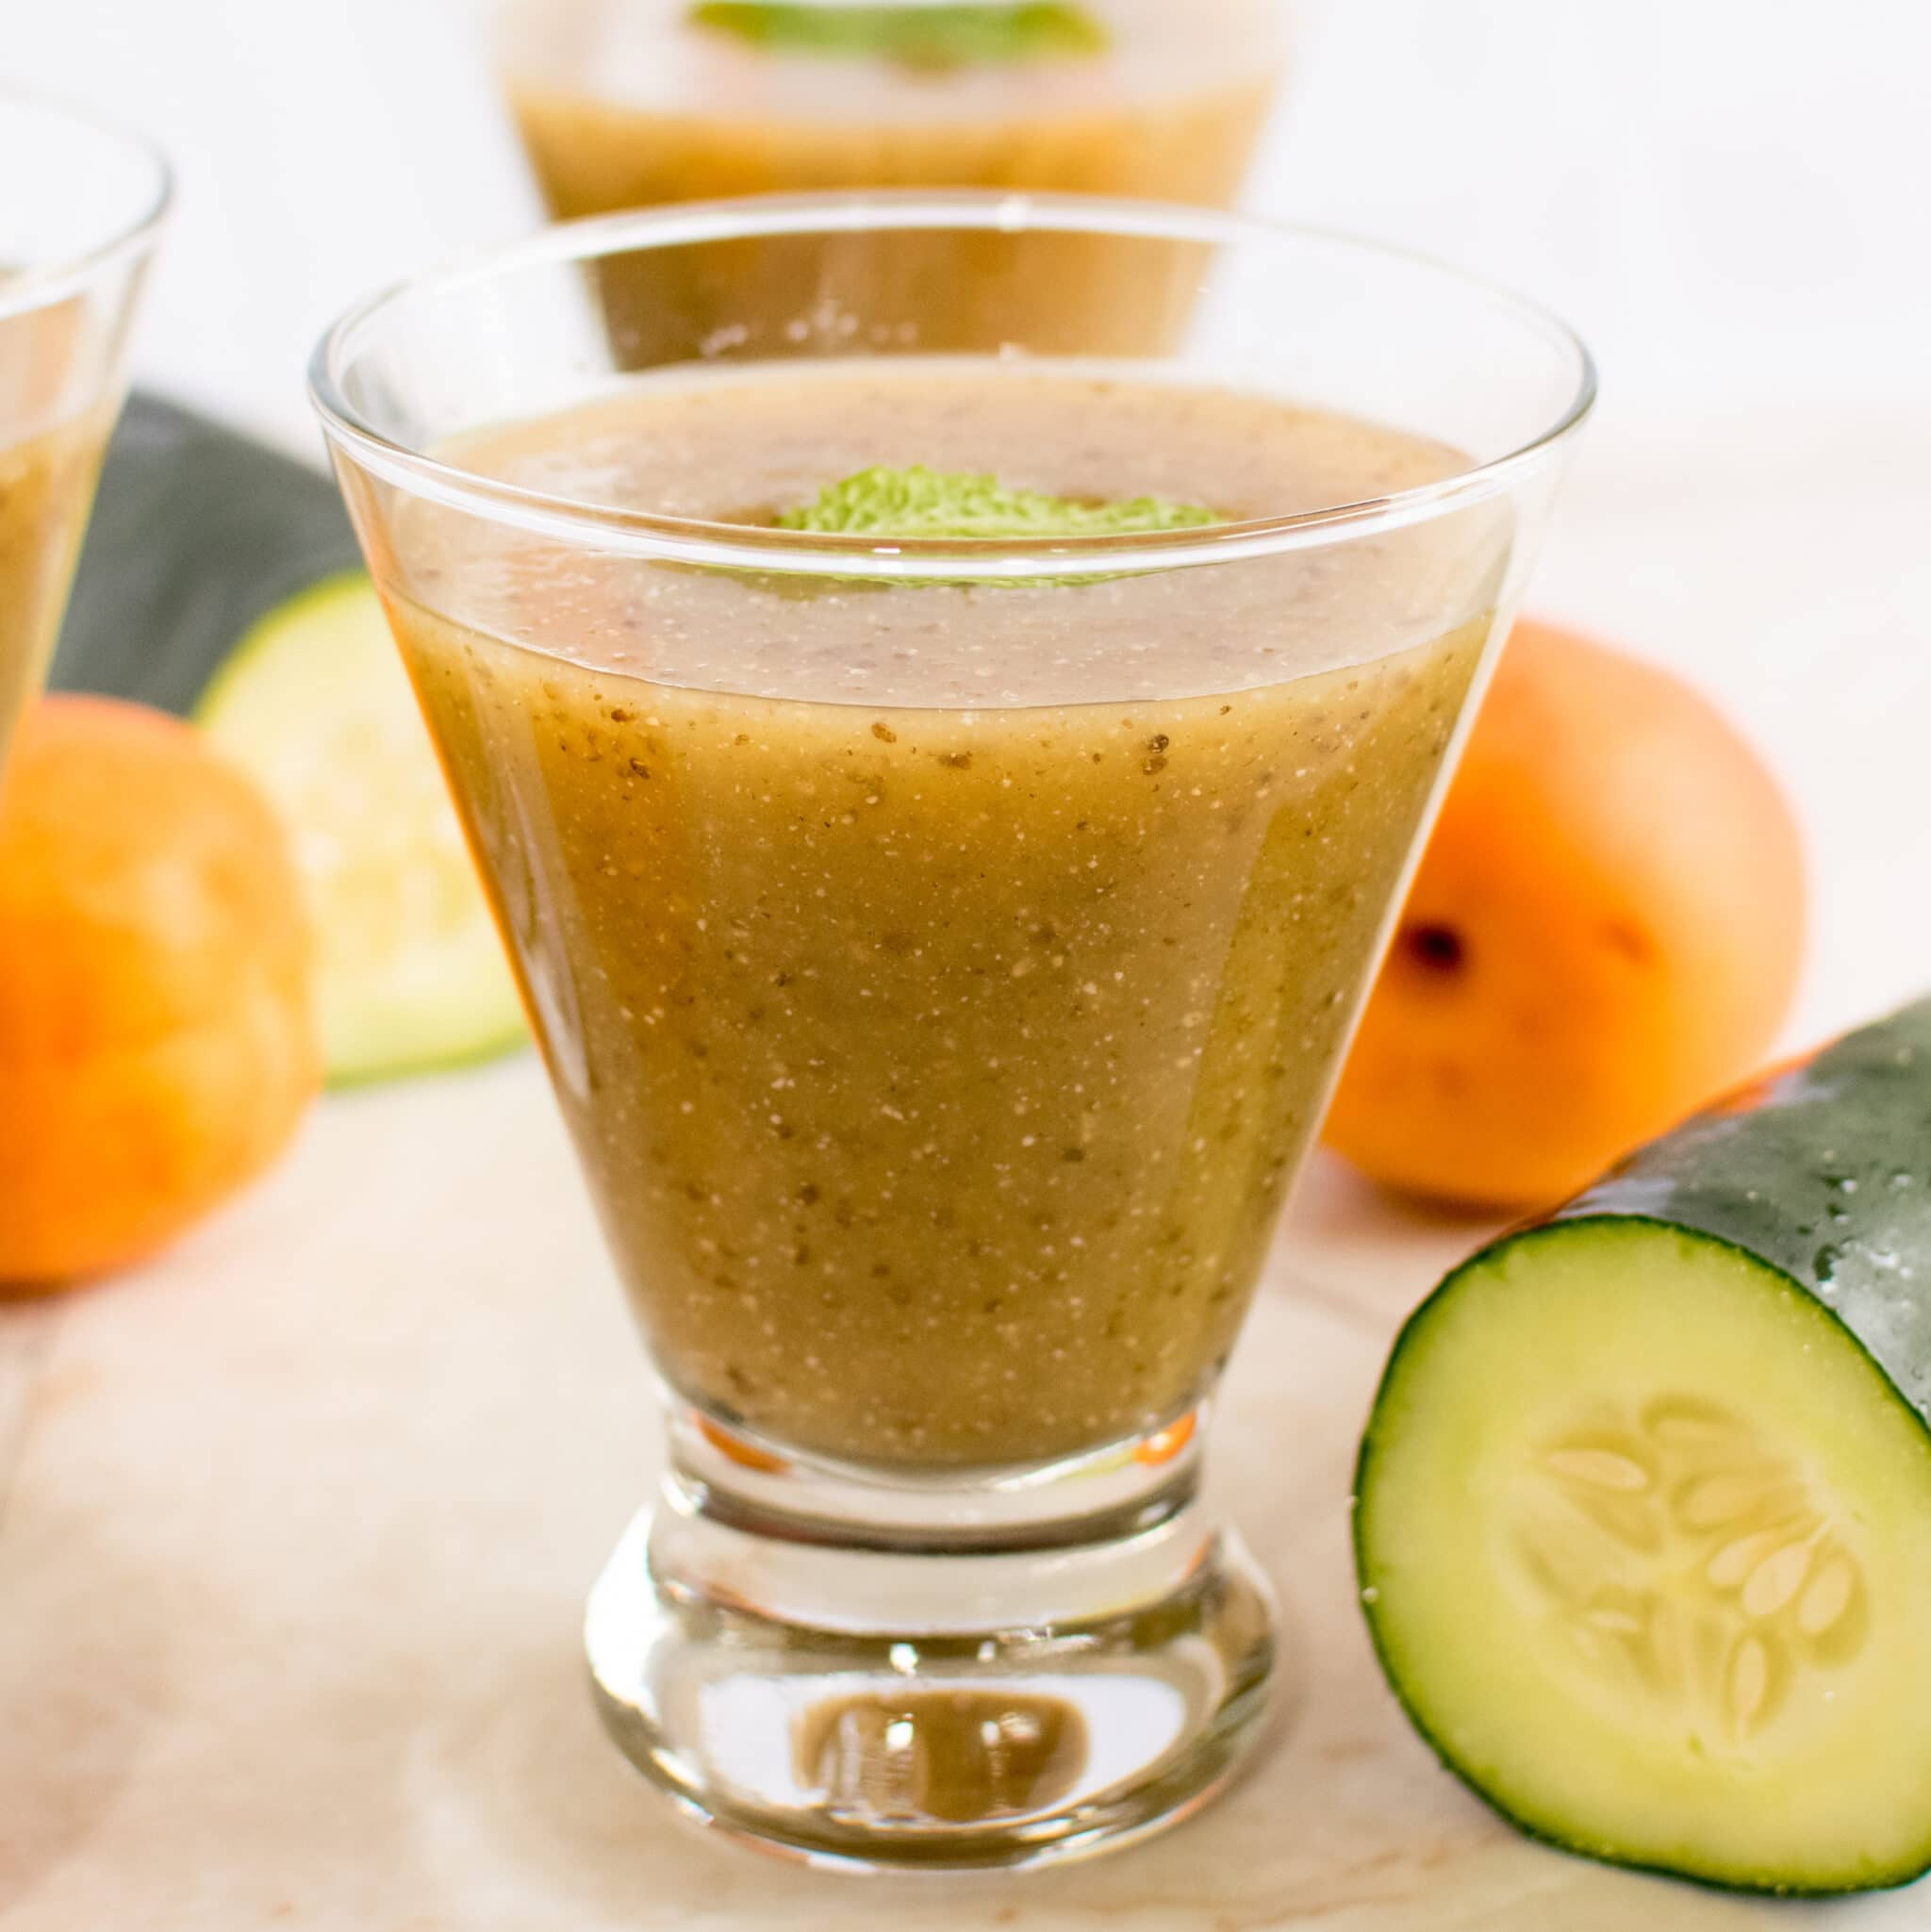 Apricot Cucumber Chia Smoothie  vegan paleo cooling refreshment to stay hydrated in a healthy way   kiipfit.com